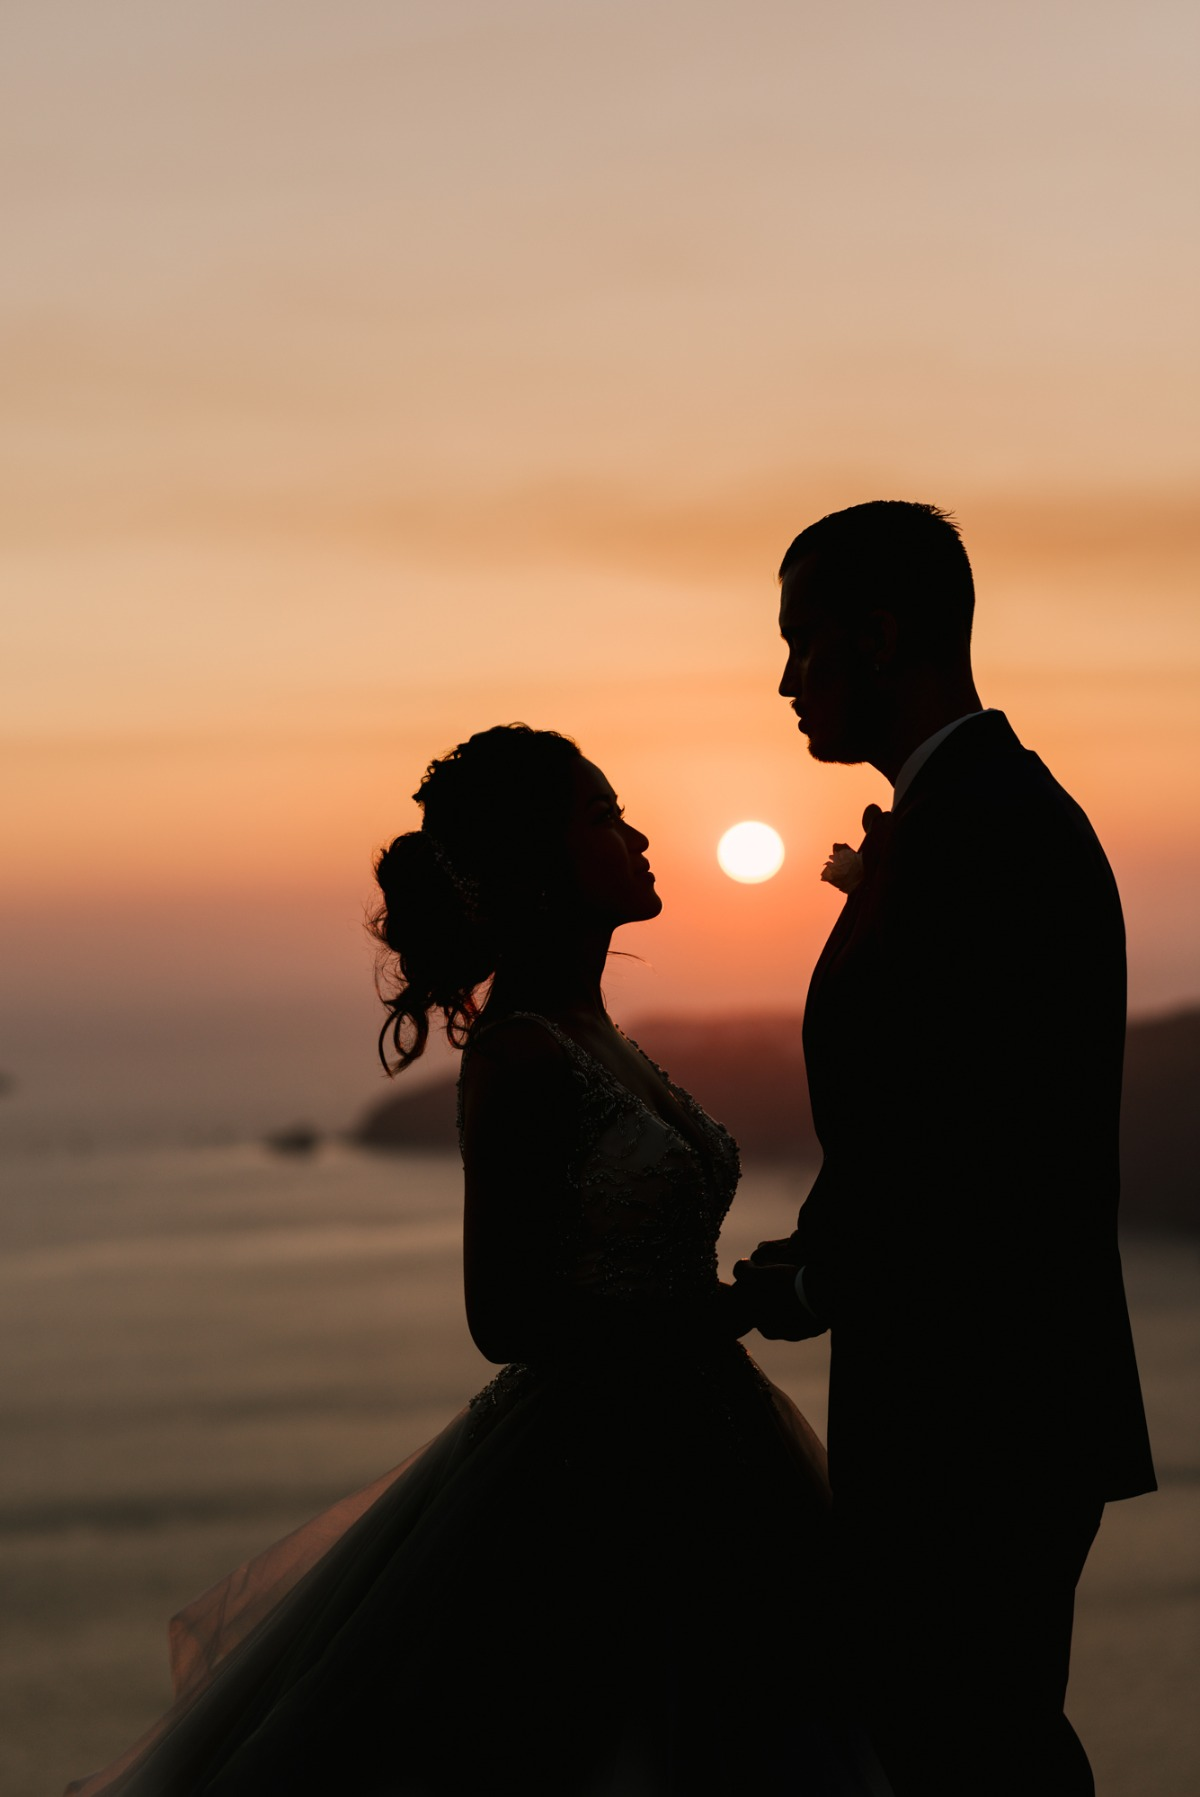 Sunset wedding photo in Greece